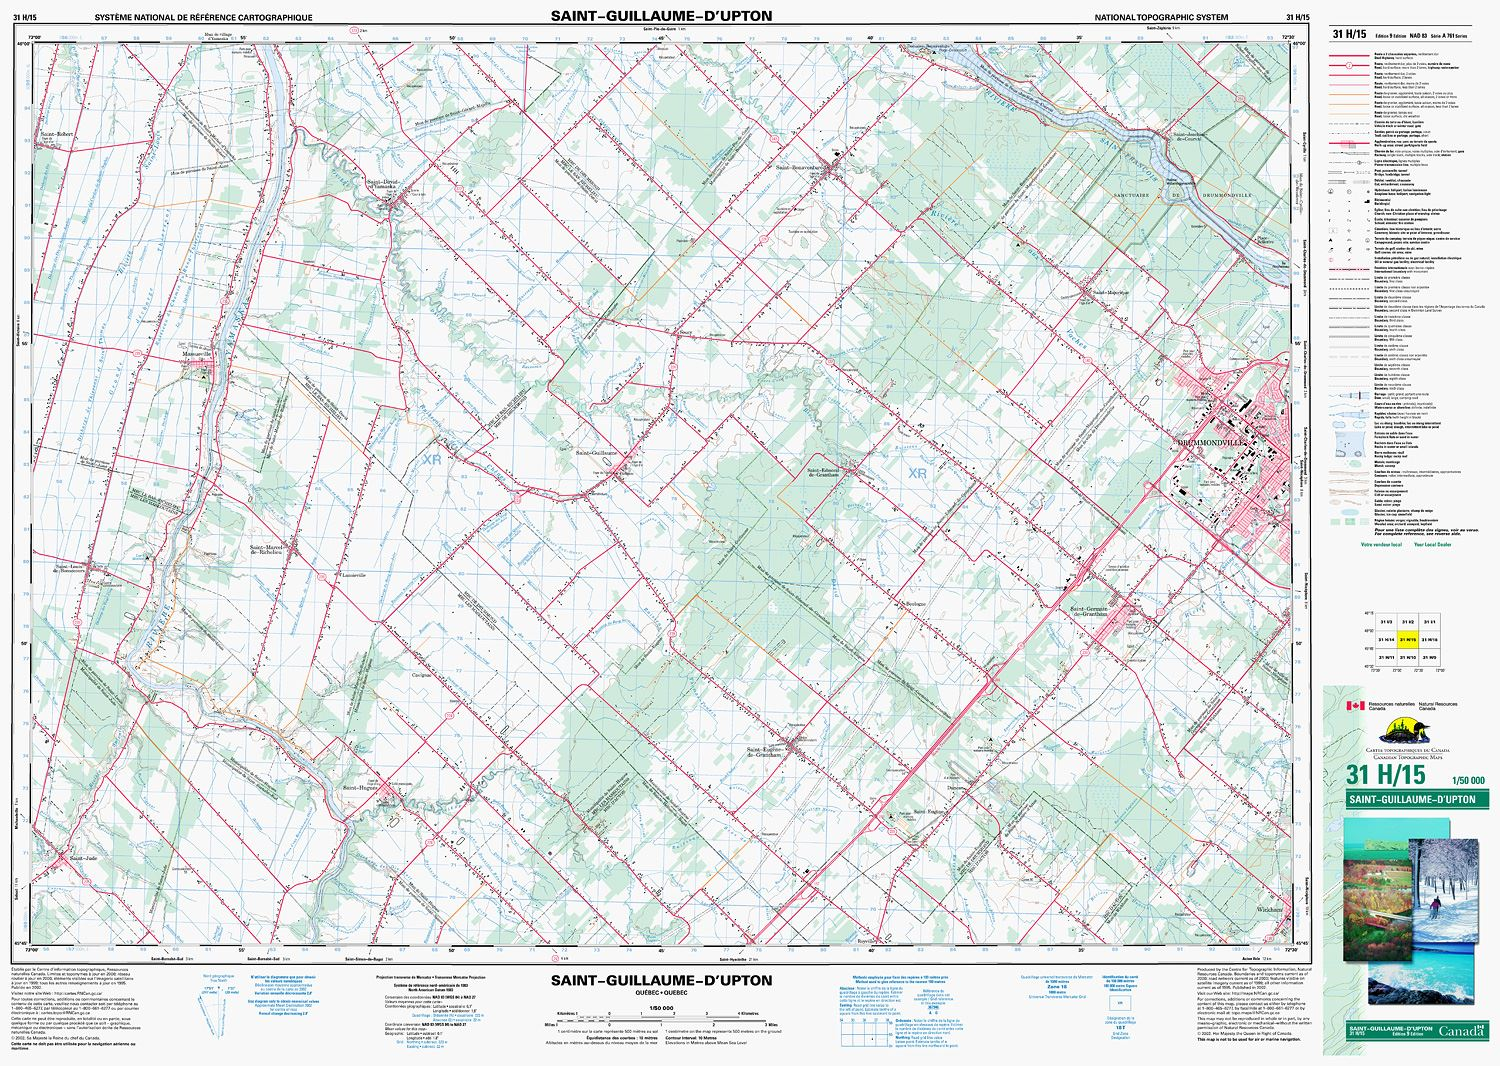 Quebec Topographic Map.031h15 Saint Guillaume D Upton Topographic Map